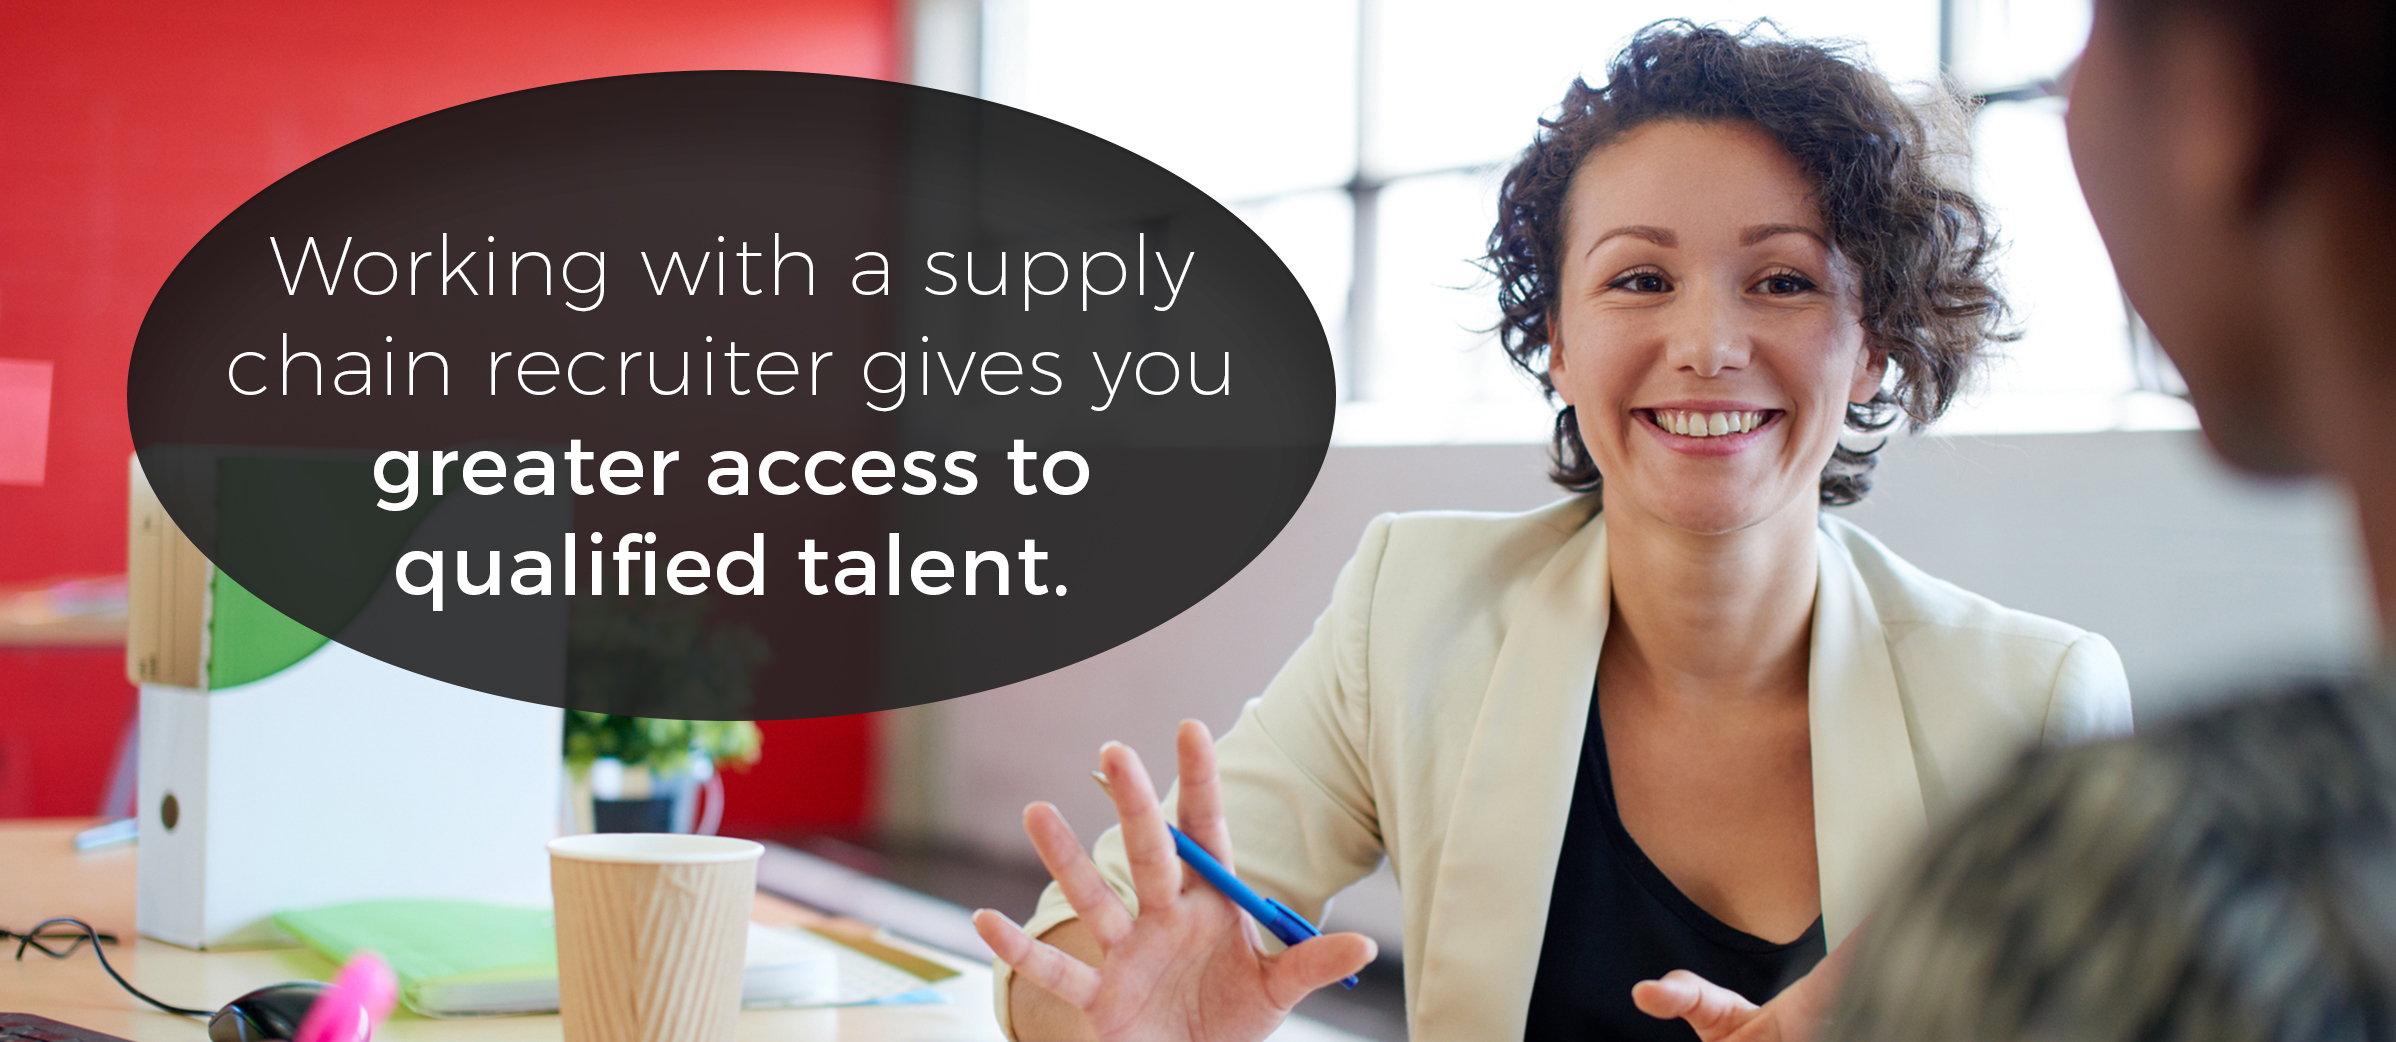 get access to qualified talent